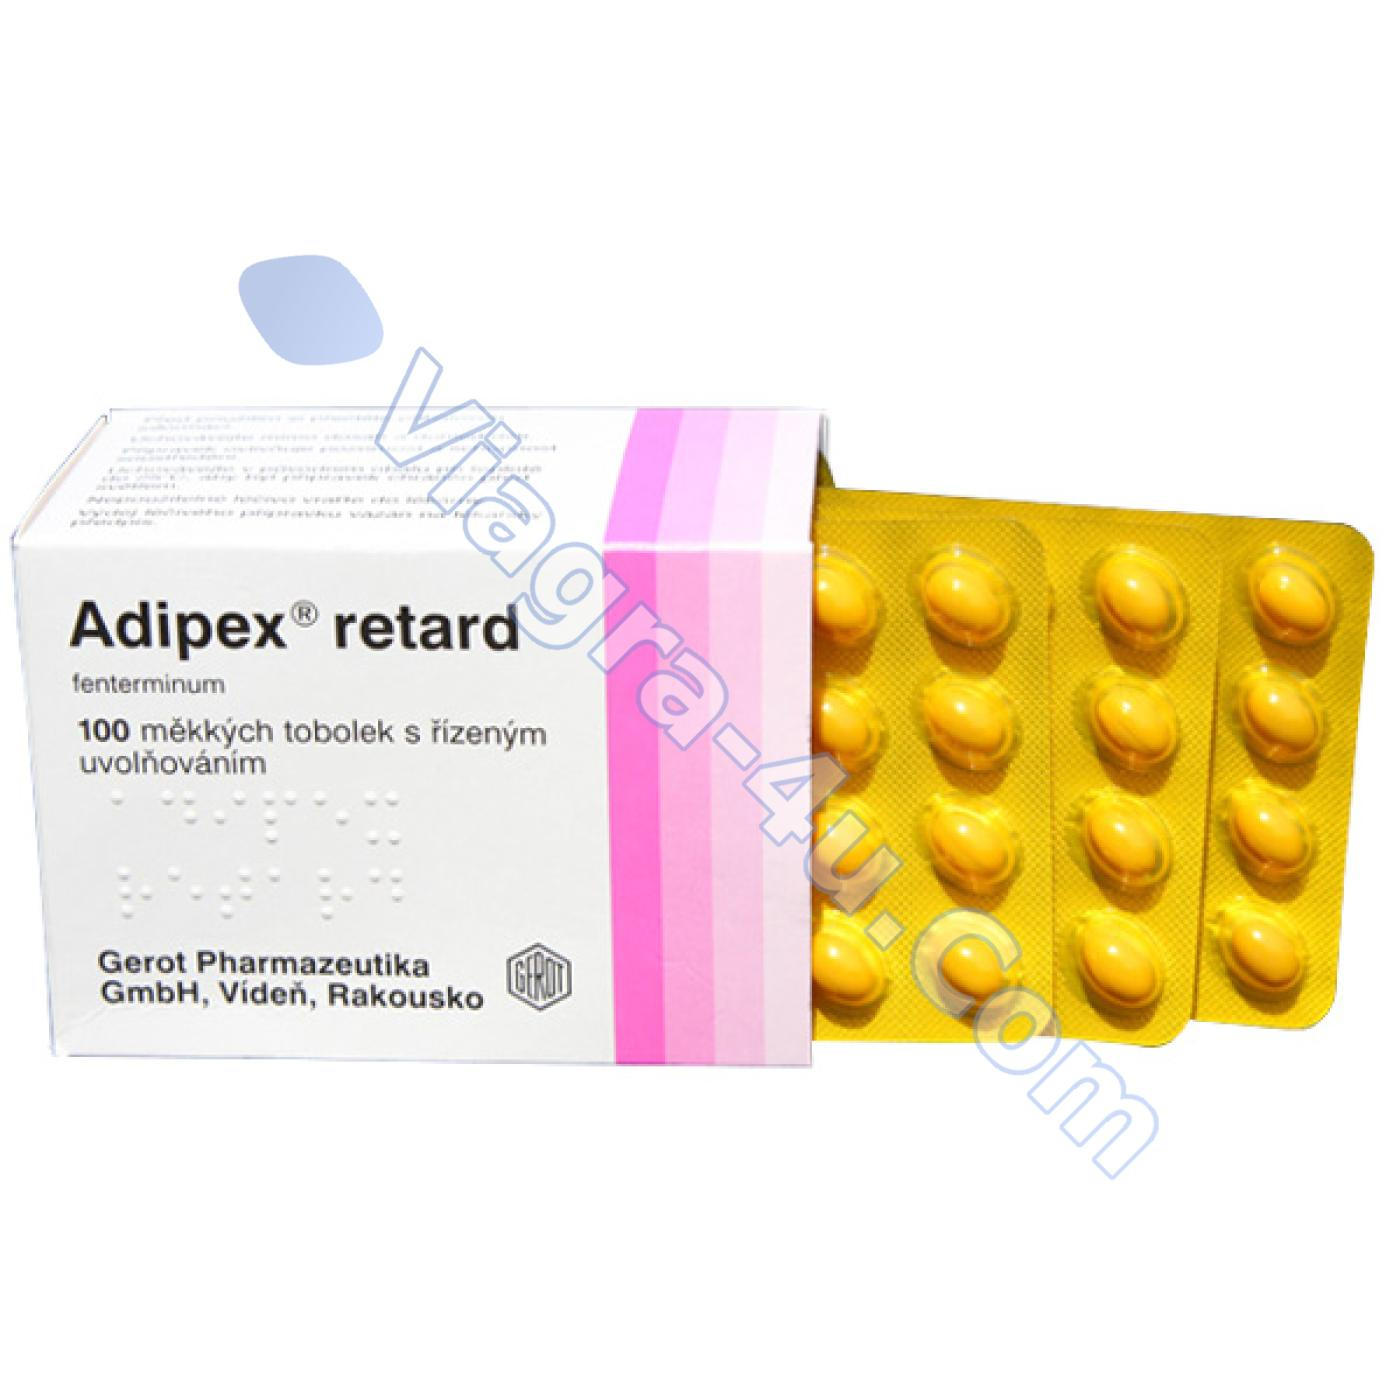 buy adipex online legally